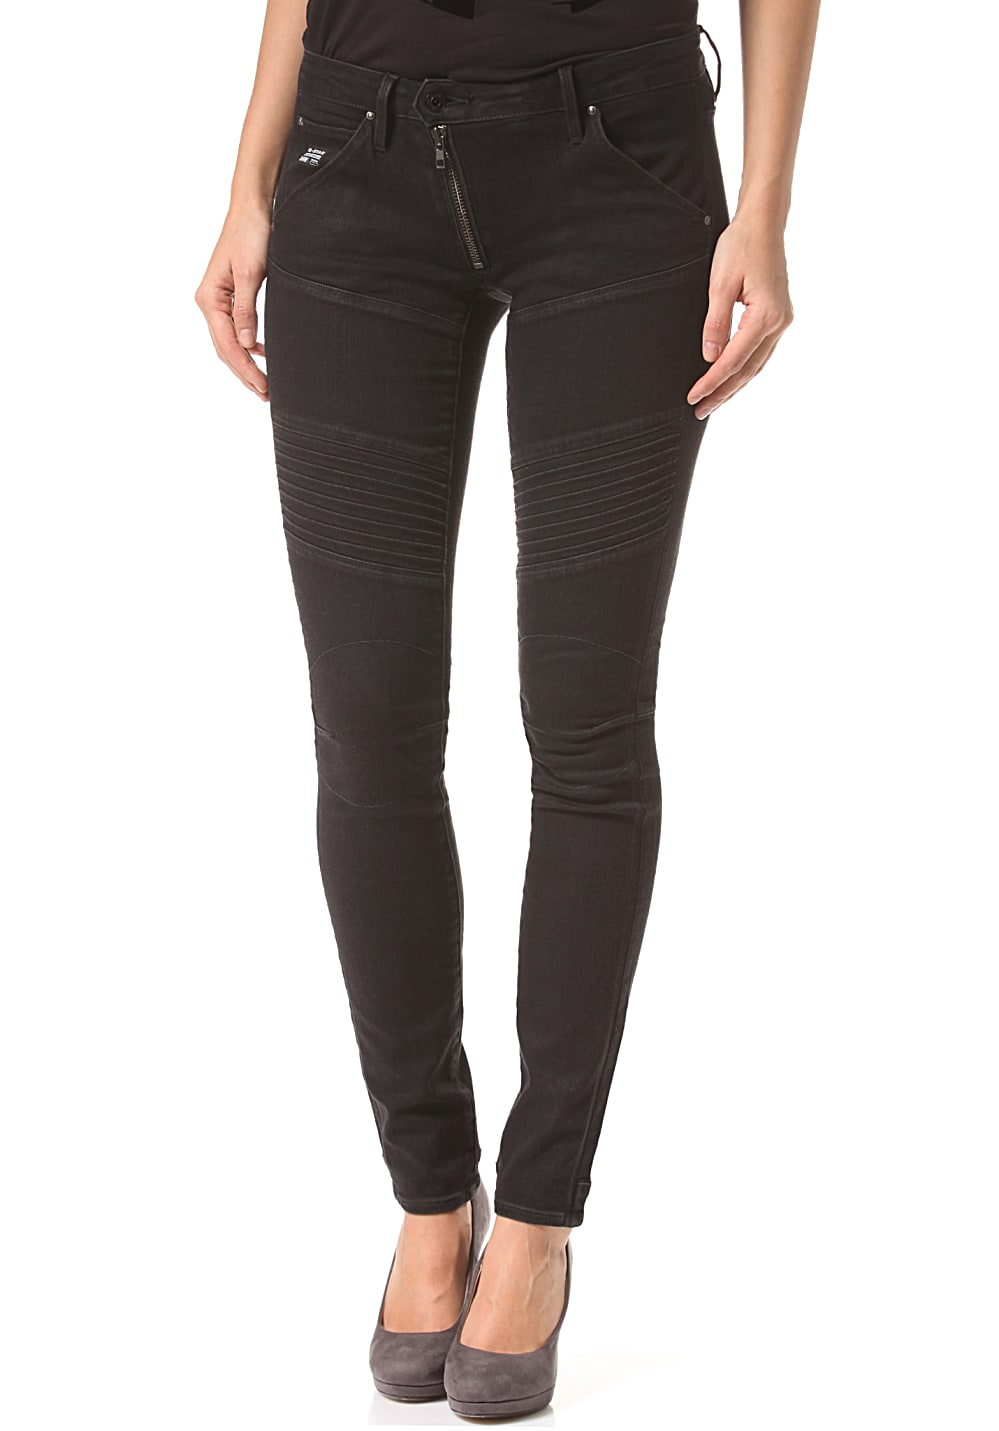 g star raw 5620 zip custom mid skinny hyto black superstretch denim p jeans f r damen. Black Bedroom Furniture Sets. Home Design Ideas